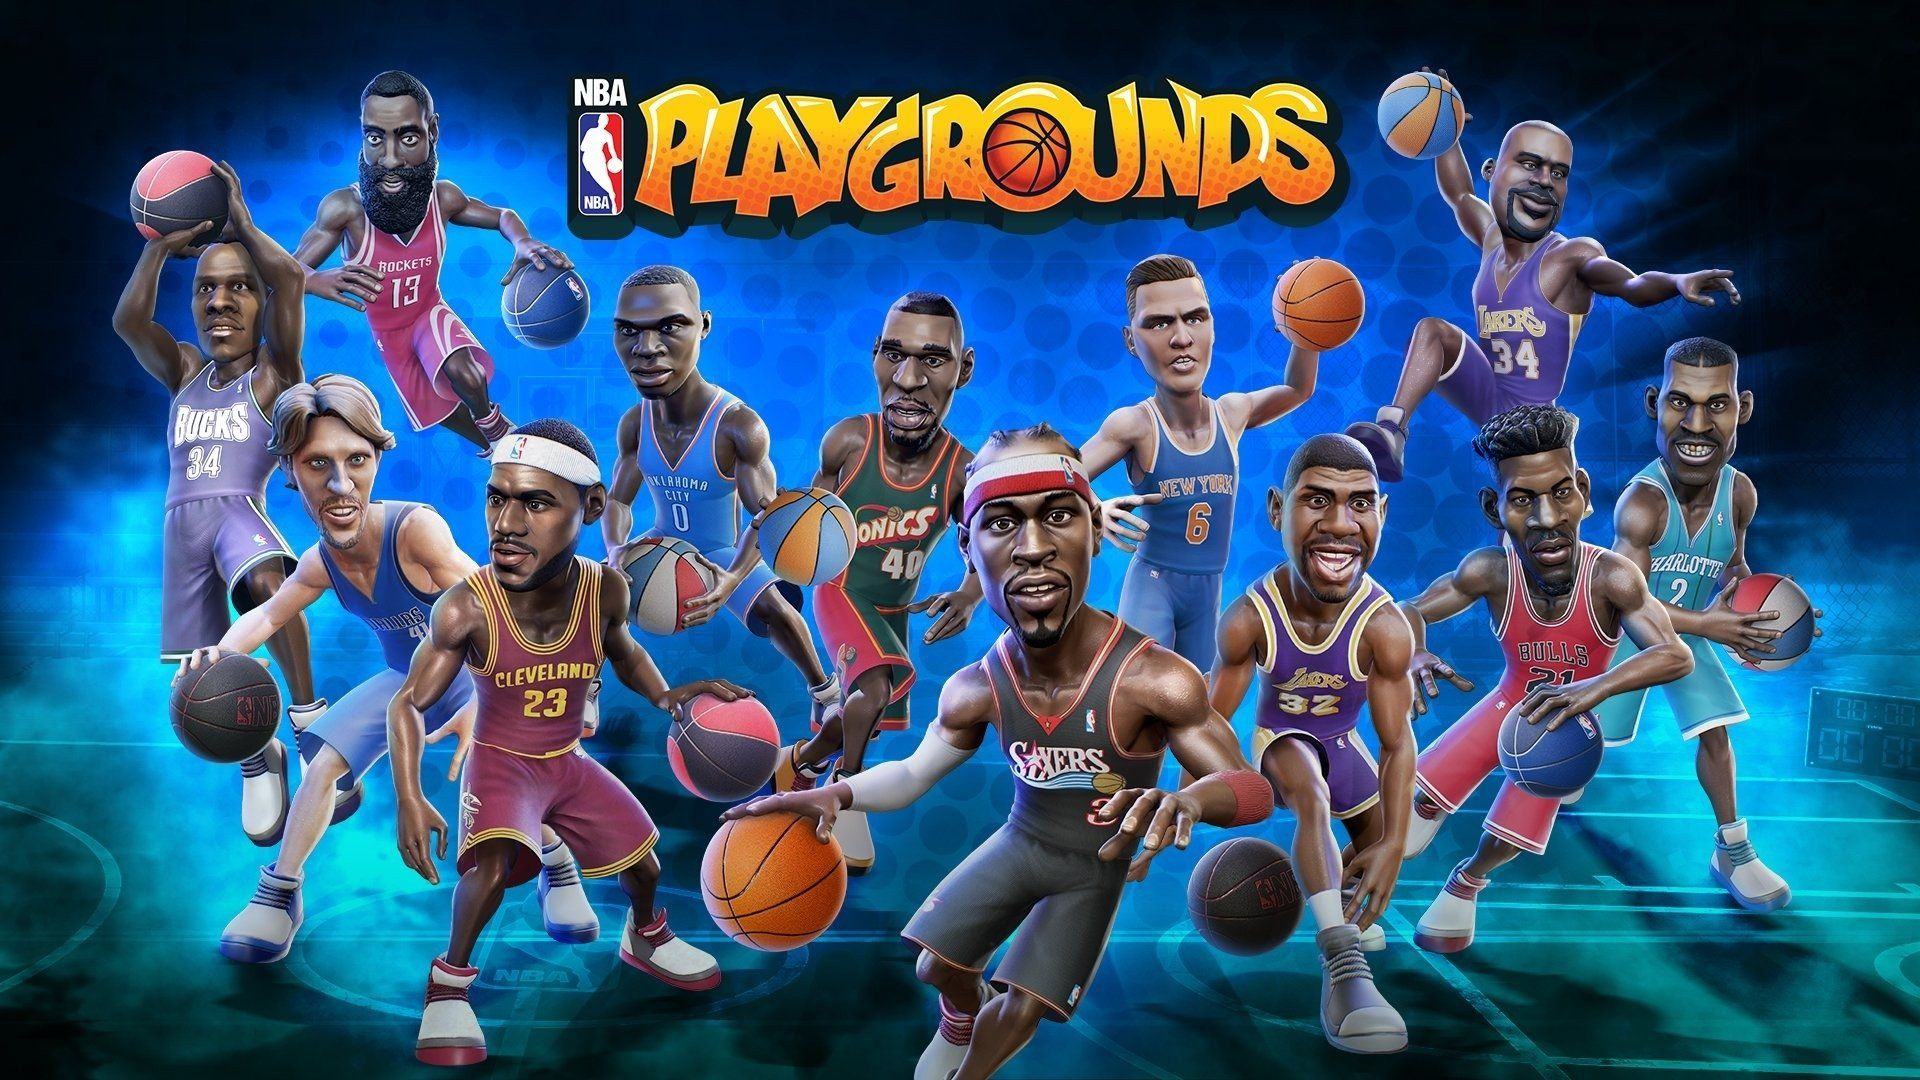 1920x1080 2 NBA Playgrounds HD Wallpapers | Background Images ...